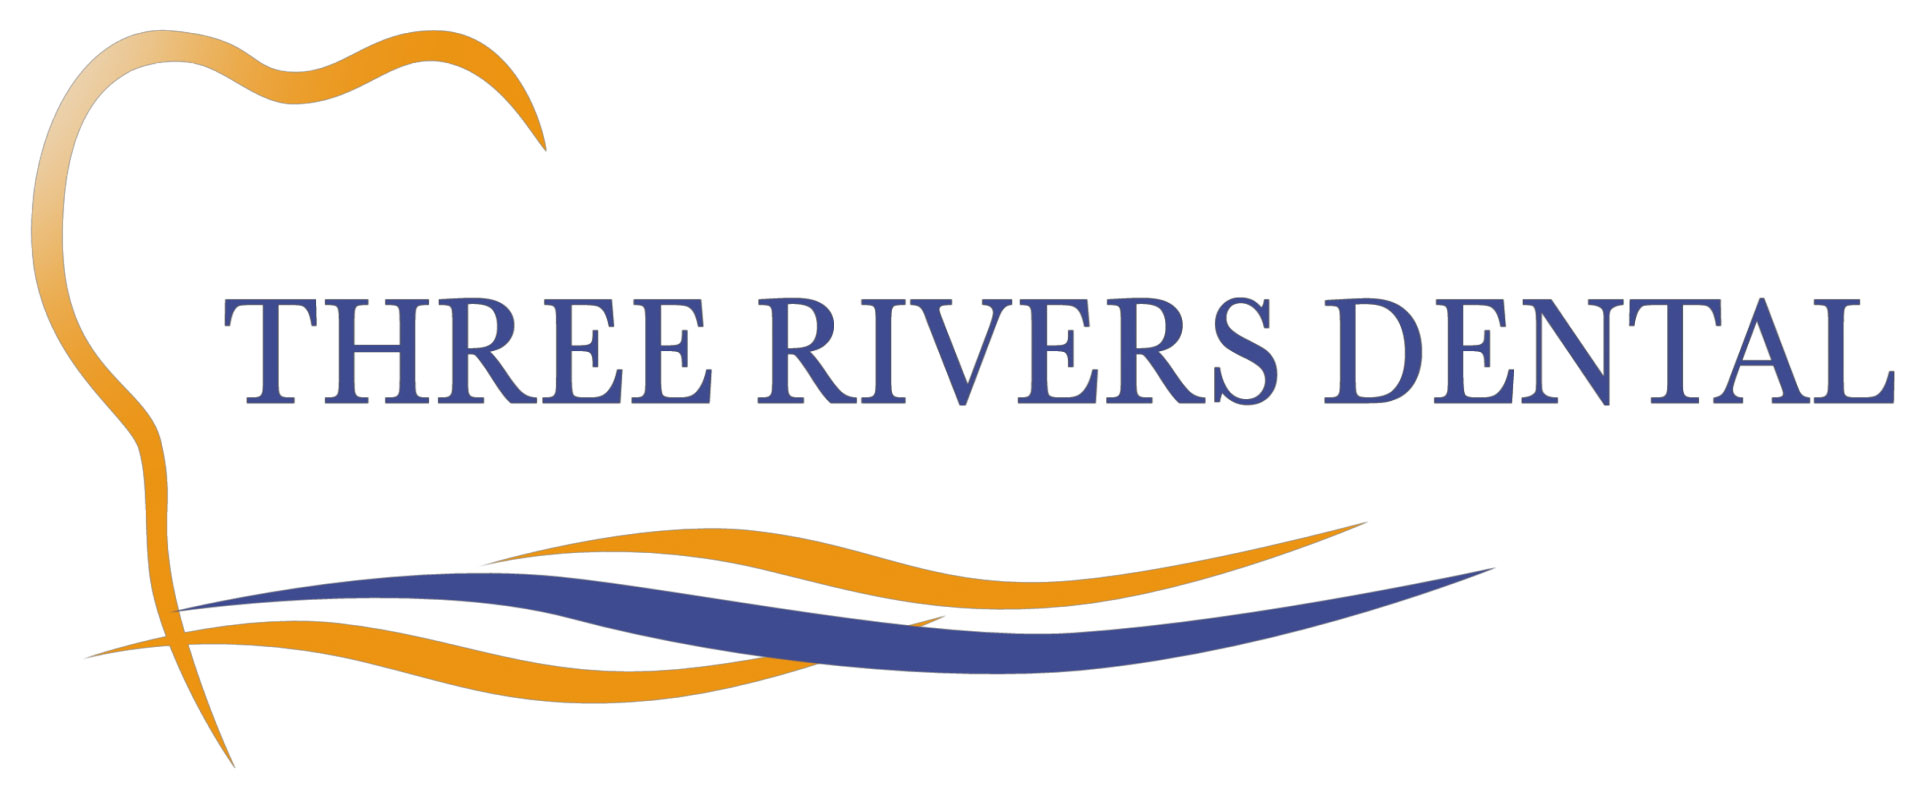 Three Rivers Dental Group: Greentree Logo